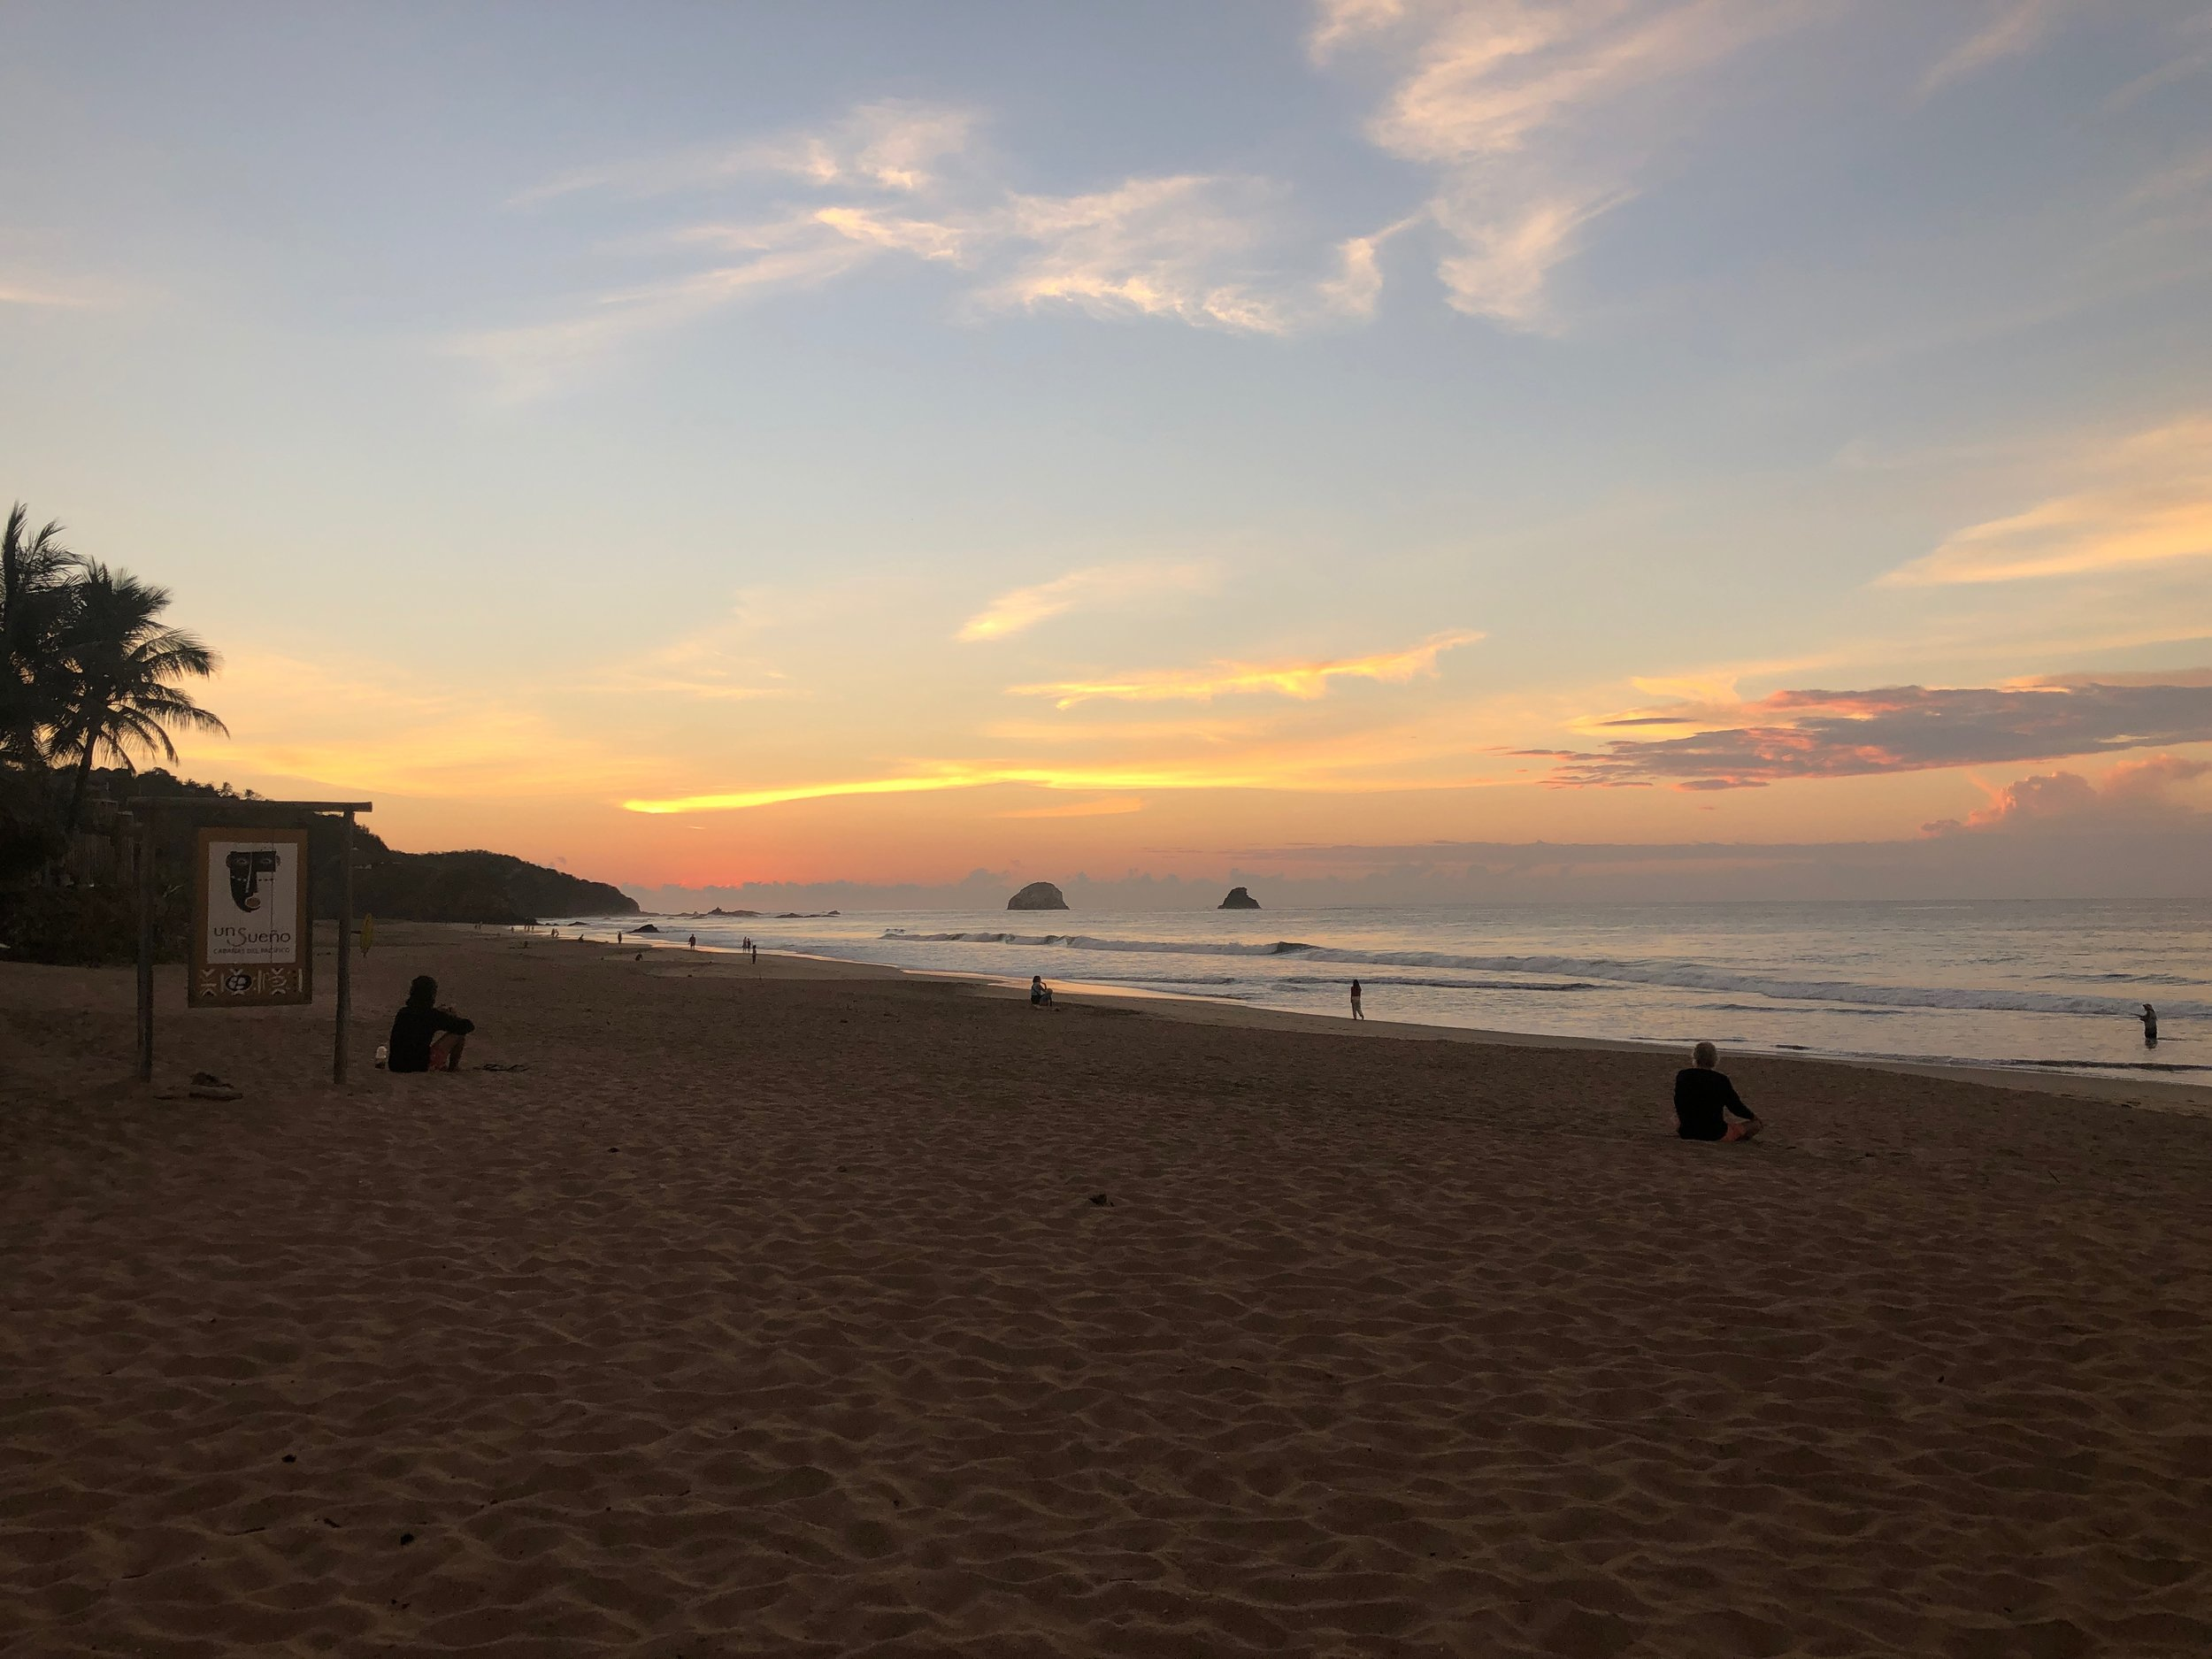 John and I woke up early in San Augustanillo and enjoyed watching the sunrise as we walked together on the beach.